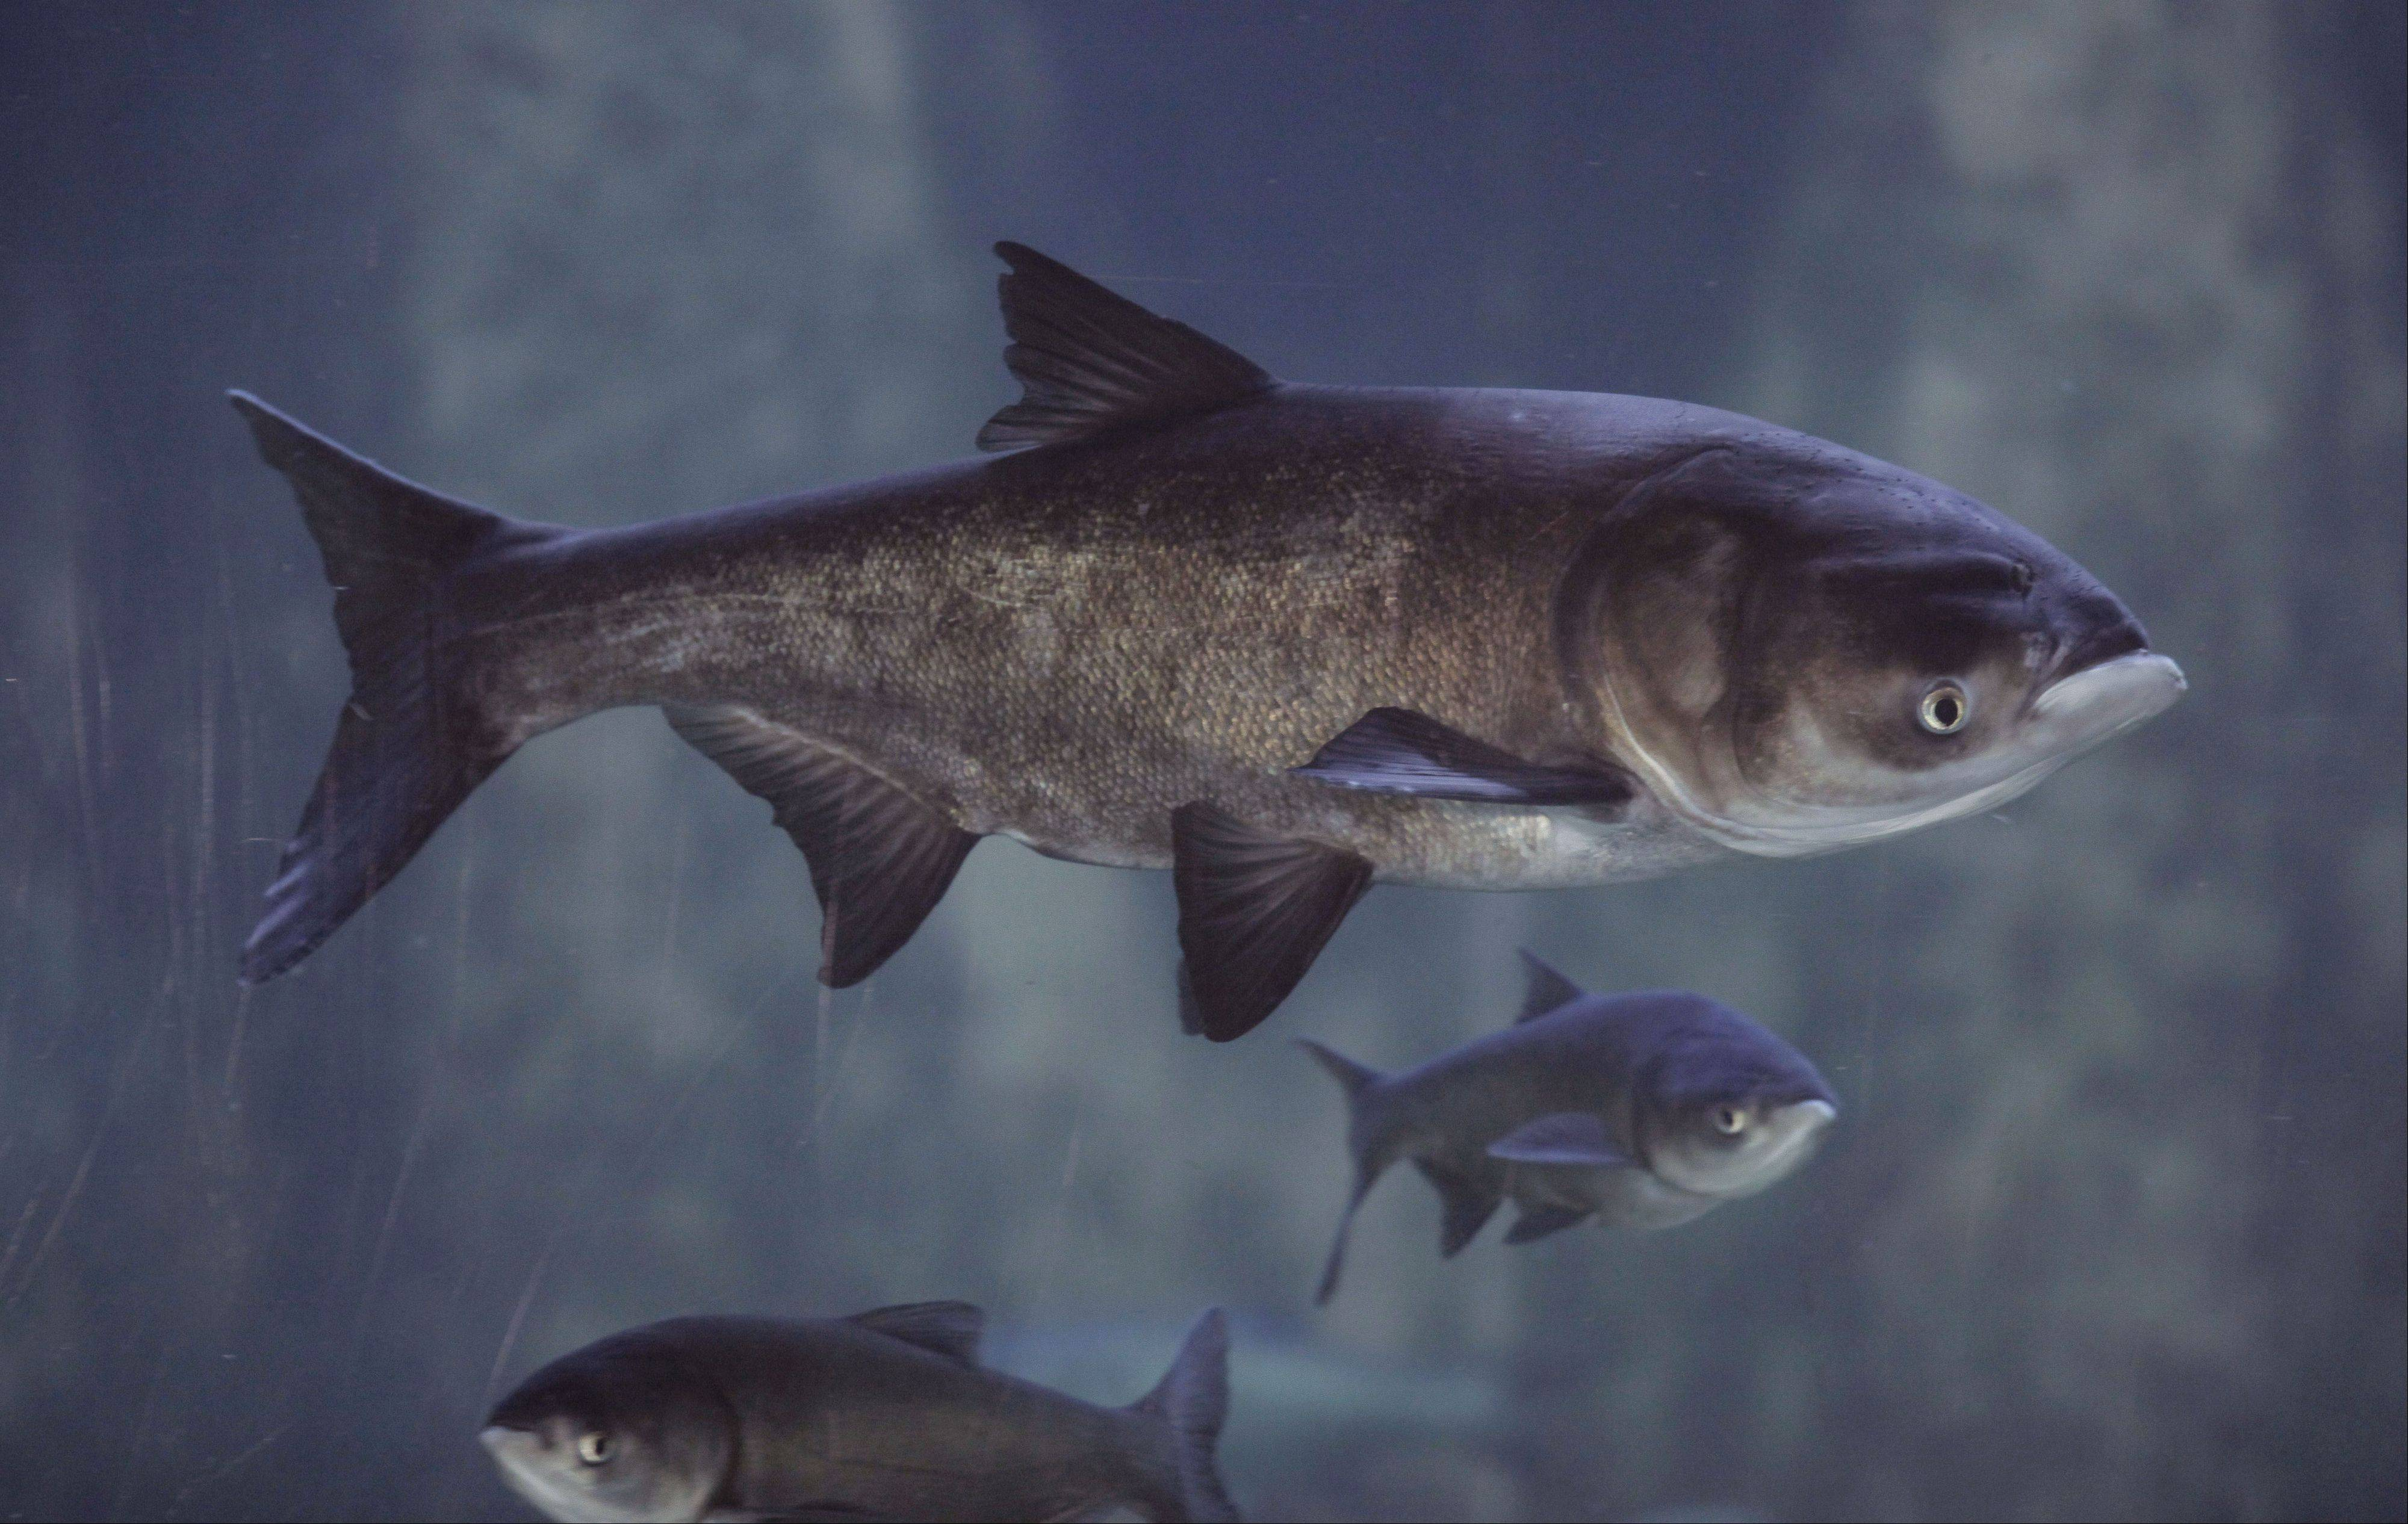 Some scientists say if the voracious Asian carp establish a foothold in the Great Lakes, they could unravel the food web by gobbling plankton needed by smaller fish that feed prized sport varieties such as walleye and trout.